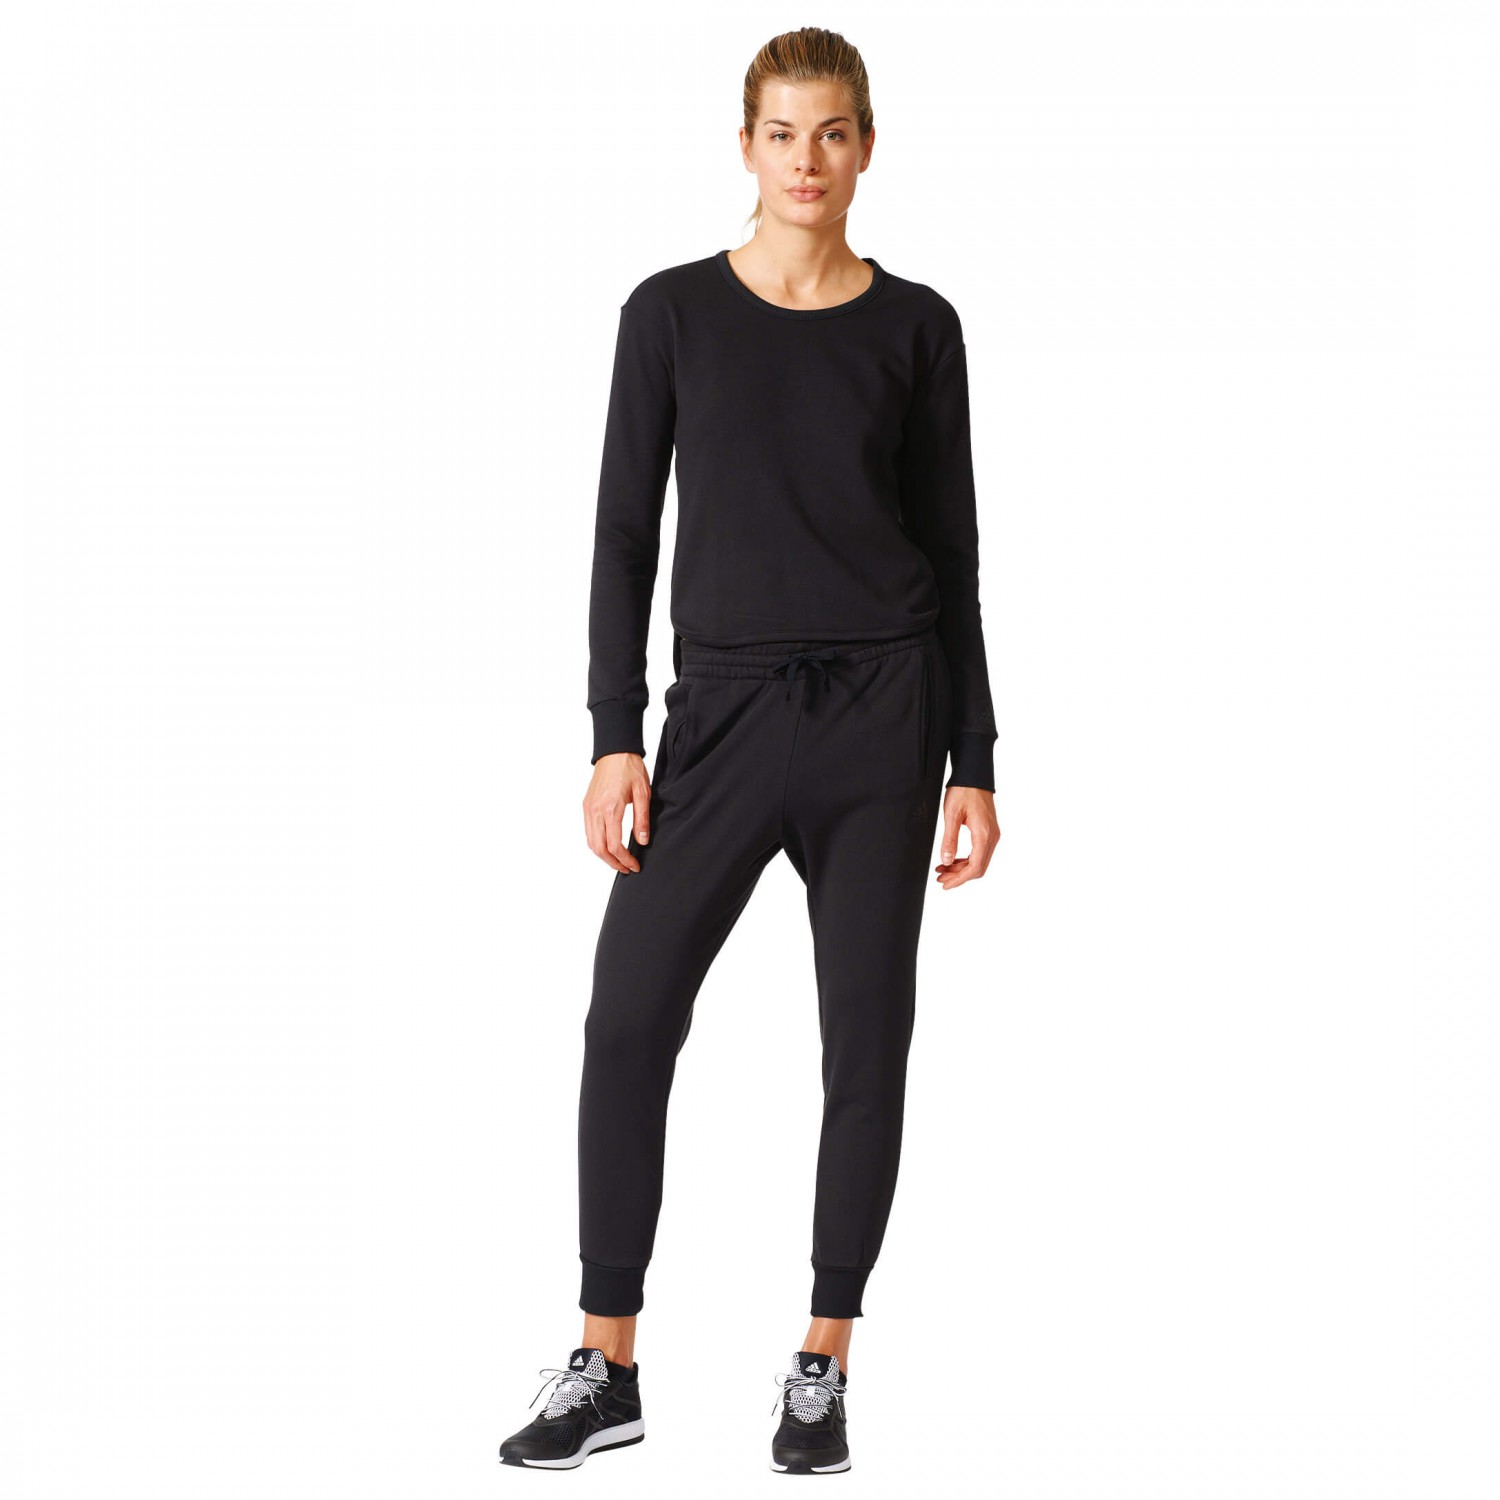 View all ladies clothing We have a massive range of women's tracksuits available for every day casualwear as well as playing sports. These ladies designer tracksuits are available in a range of sizes, colours and styles all at hugely discounted prizes.